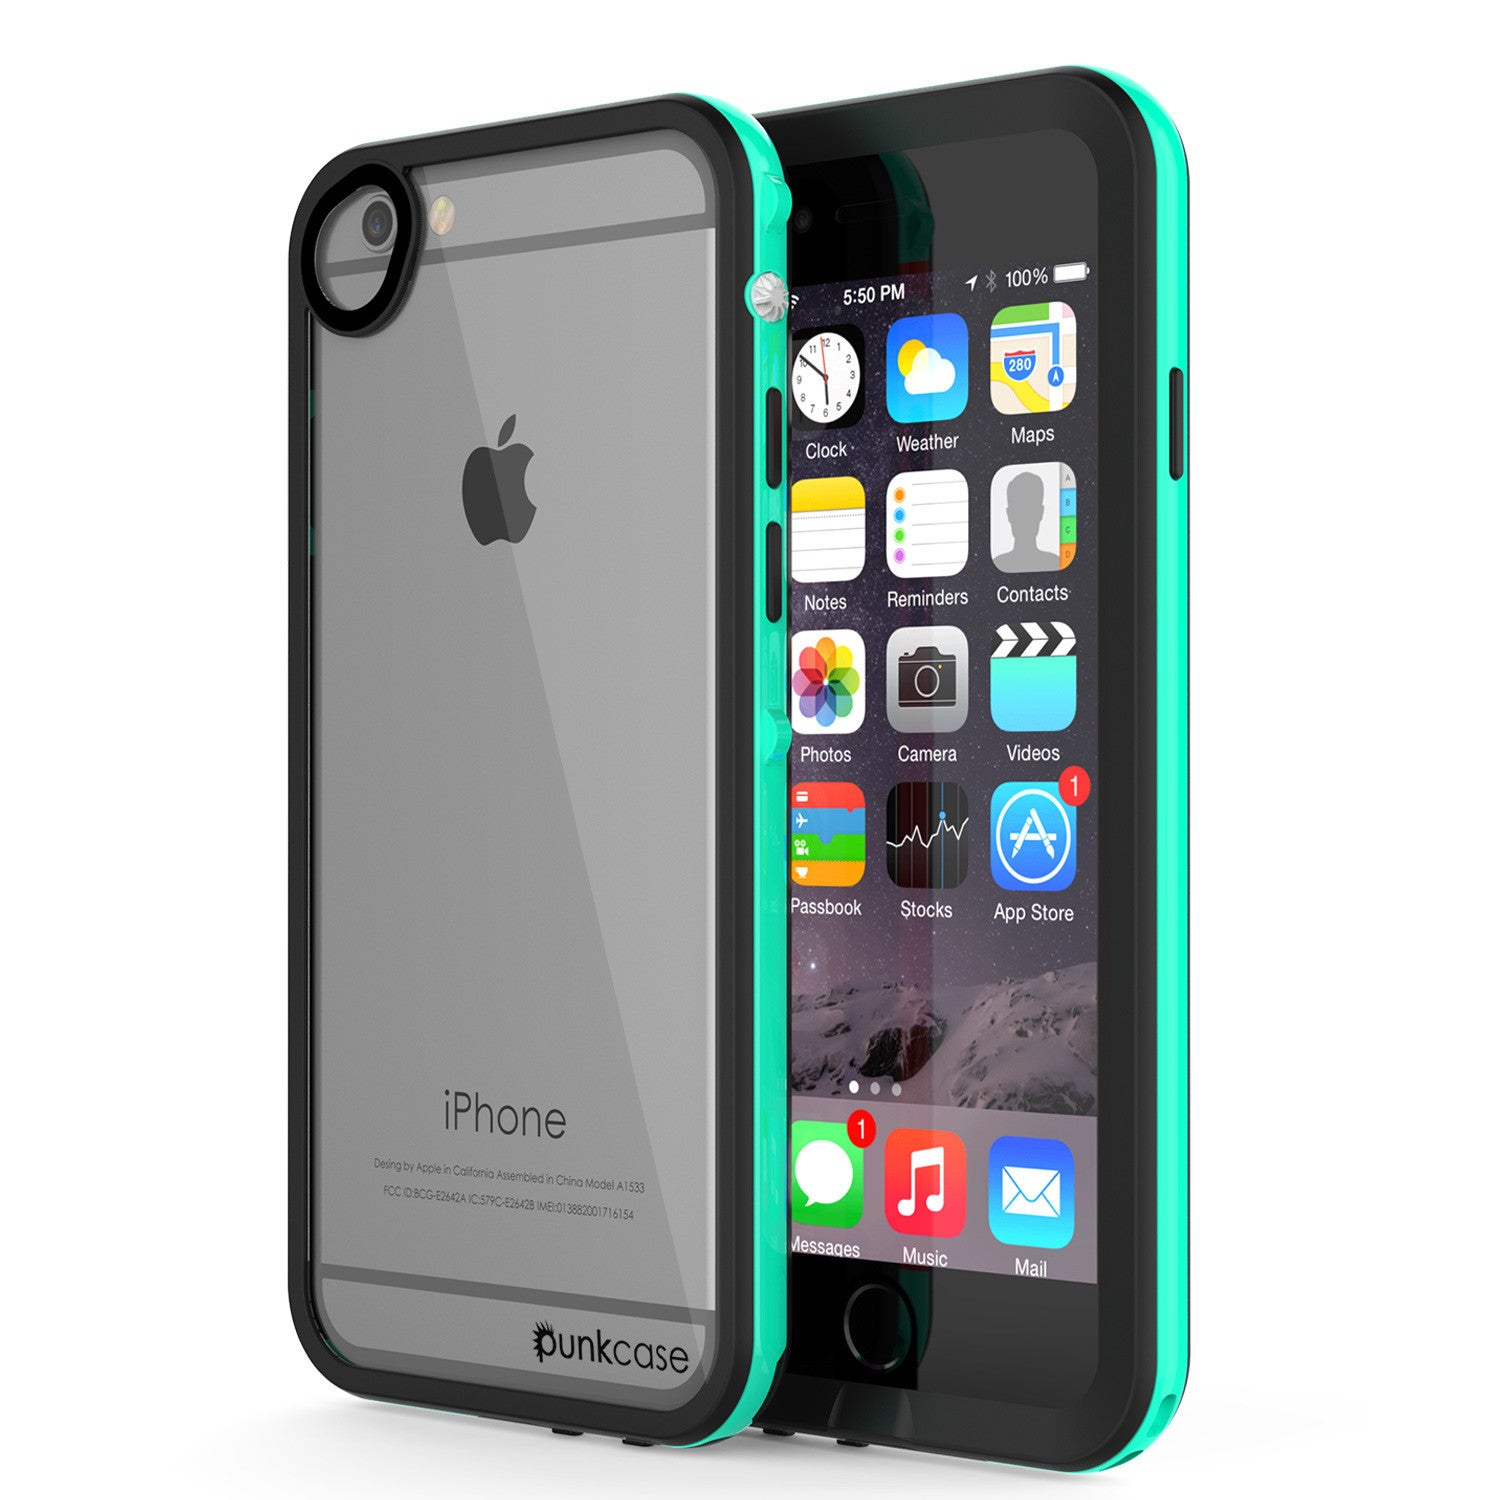 Apple iPhone 7/6s/6 Waterproof Case, PUNKcase CRYSTAL 2.0 Teal W/ Attached Screen Protector  | Warranty